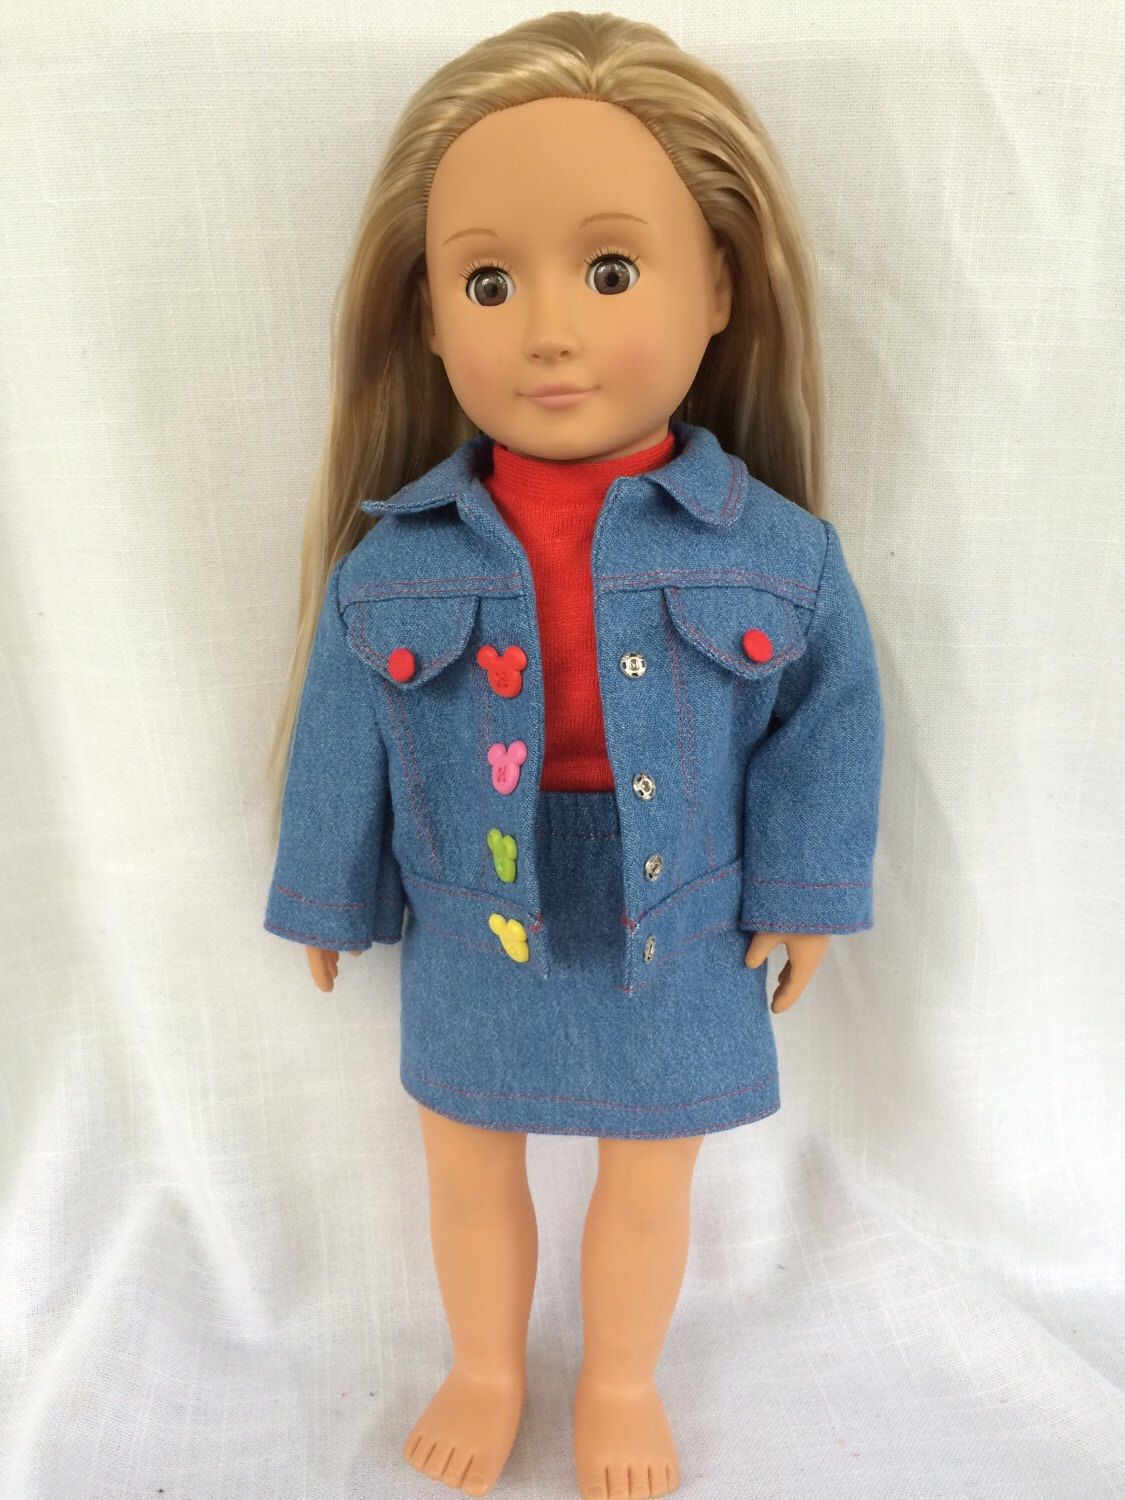 Denim Skirt, Jacket, and Pants with Red Blouse Outfit for 18 Inch Dolls by BEdolls on Etsy https://www.etsy.com/listing/274398424/denim-skirt-jacket-and-pants-with-red